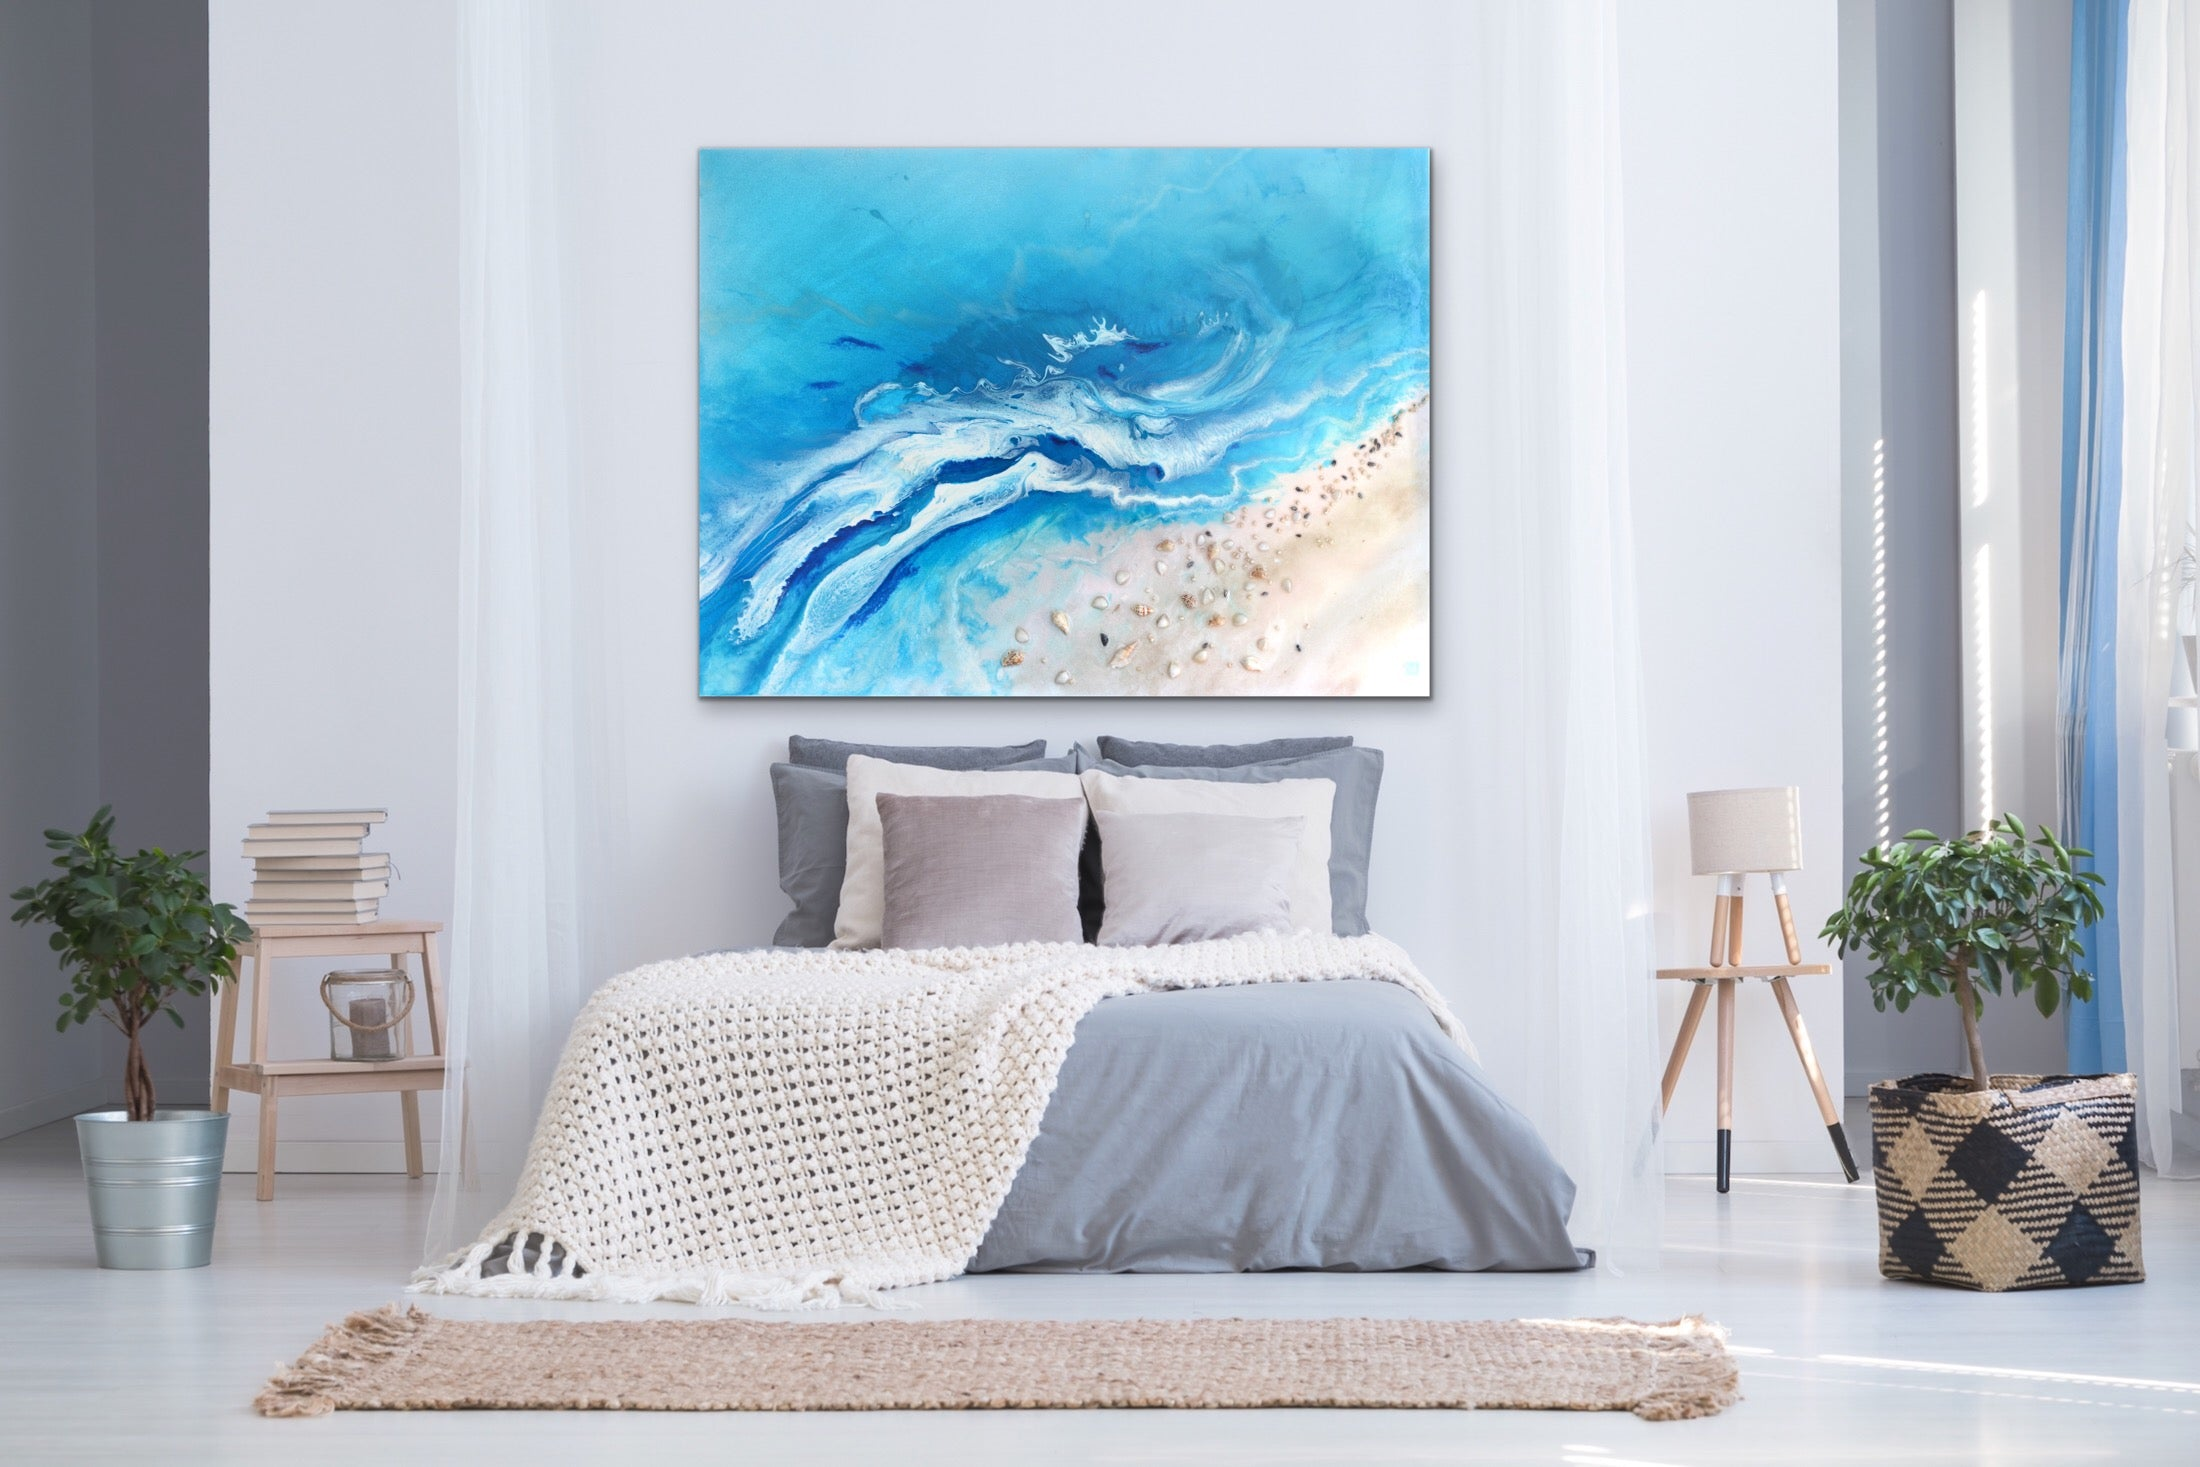 Abstract Seascape. Teal Ocean. Bali Utopia 4. Art Print. Antuanelle Limited Edition Print